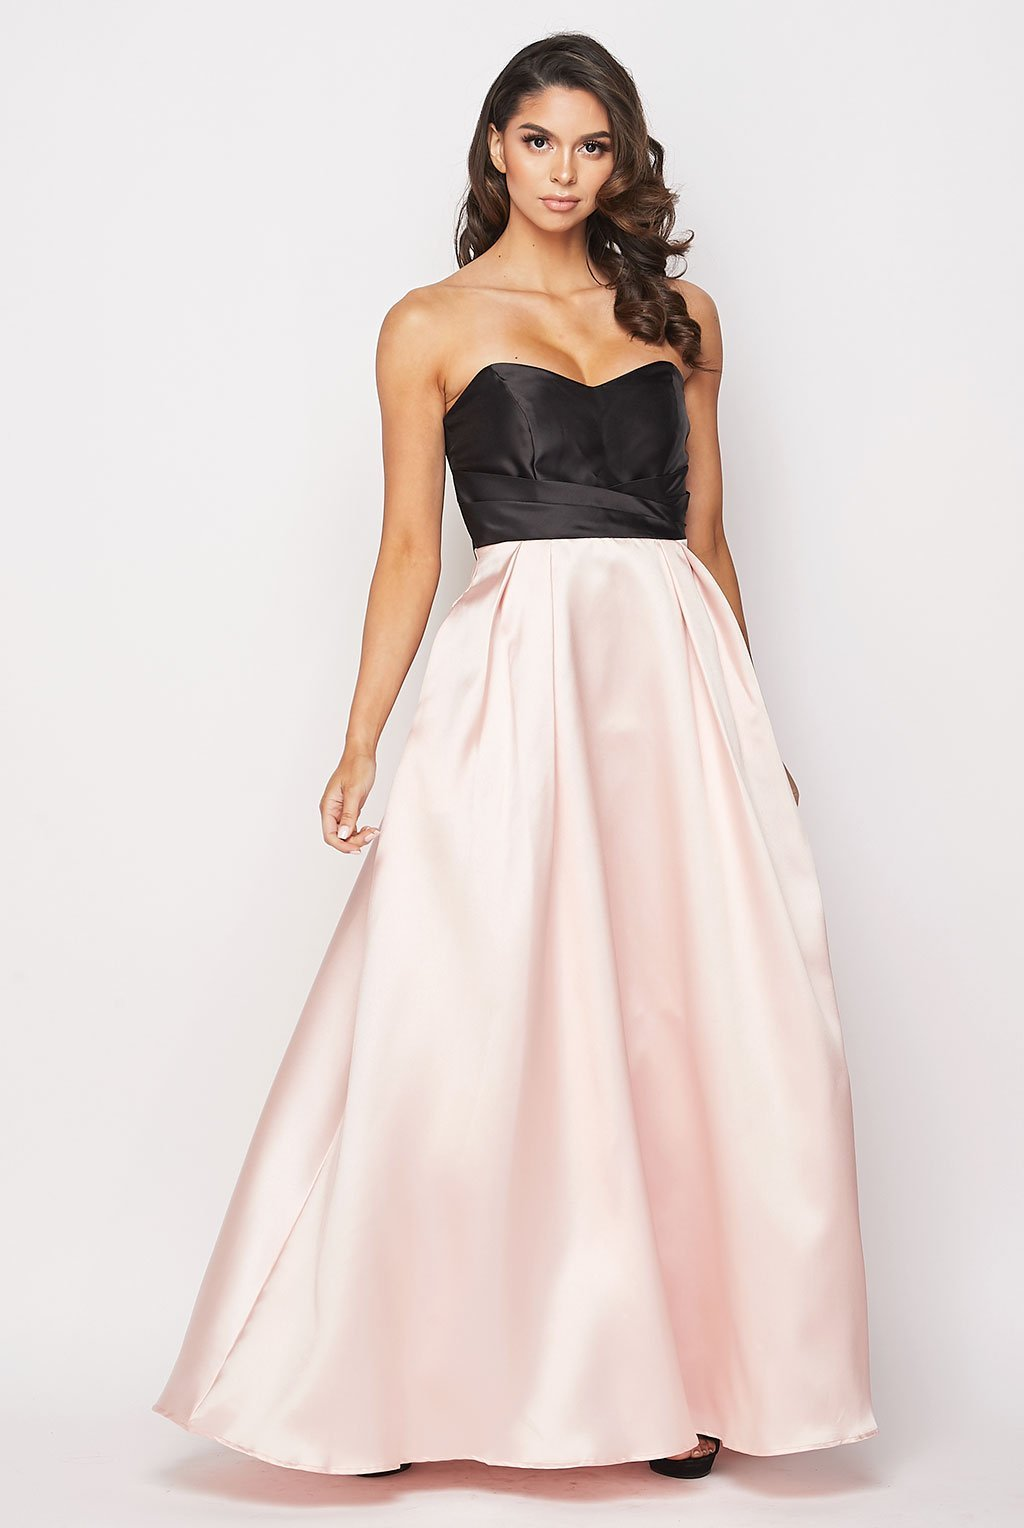 Teeze Me | Satin And Lace Ball Gown | Peach/Black | Teeze Me Juniors Apparel